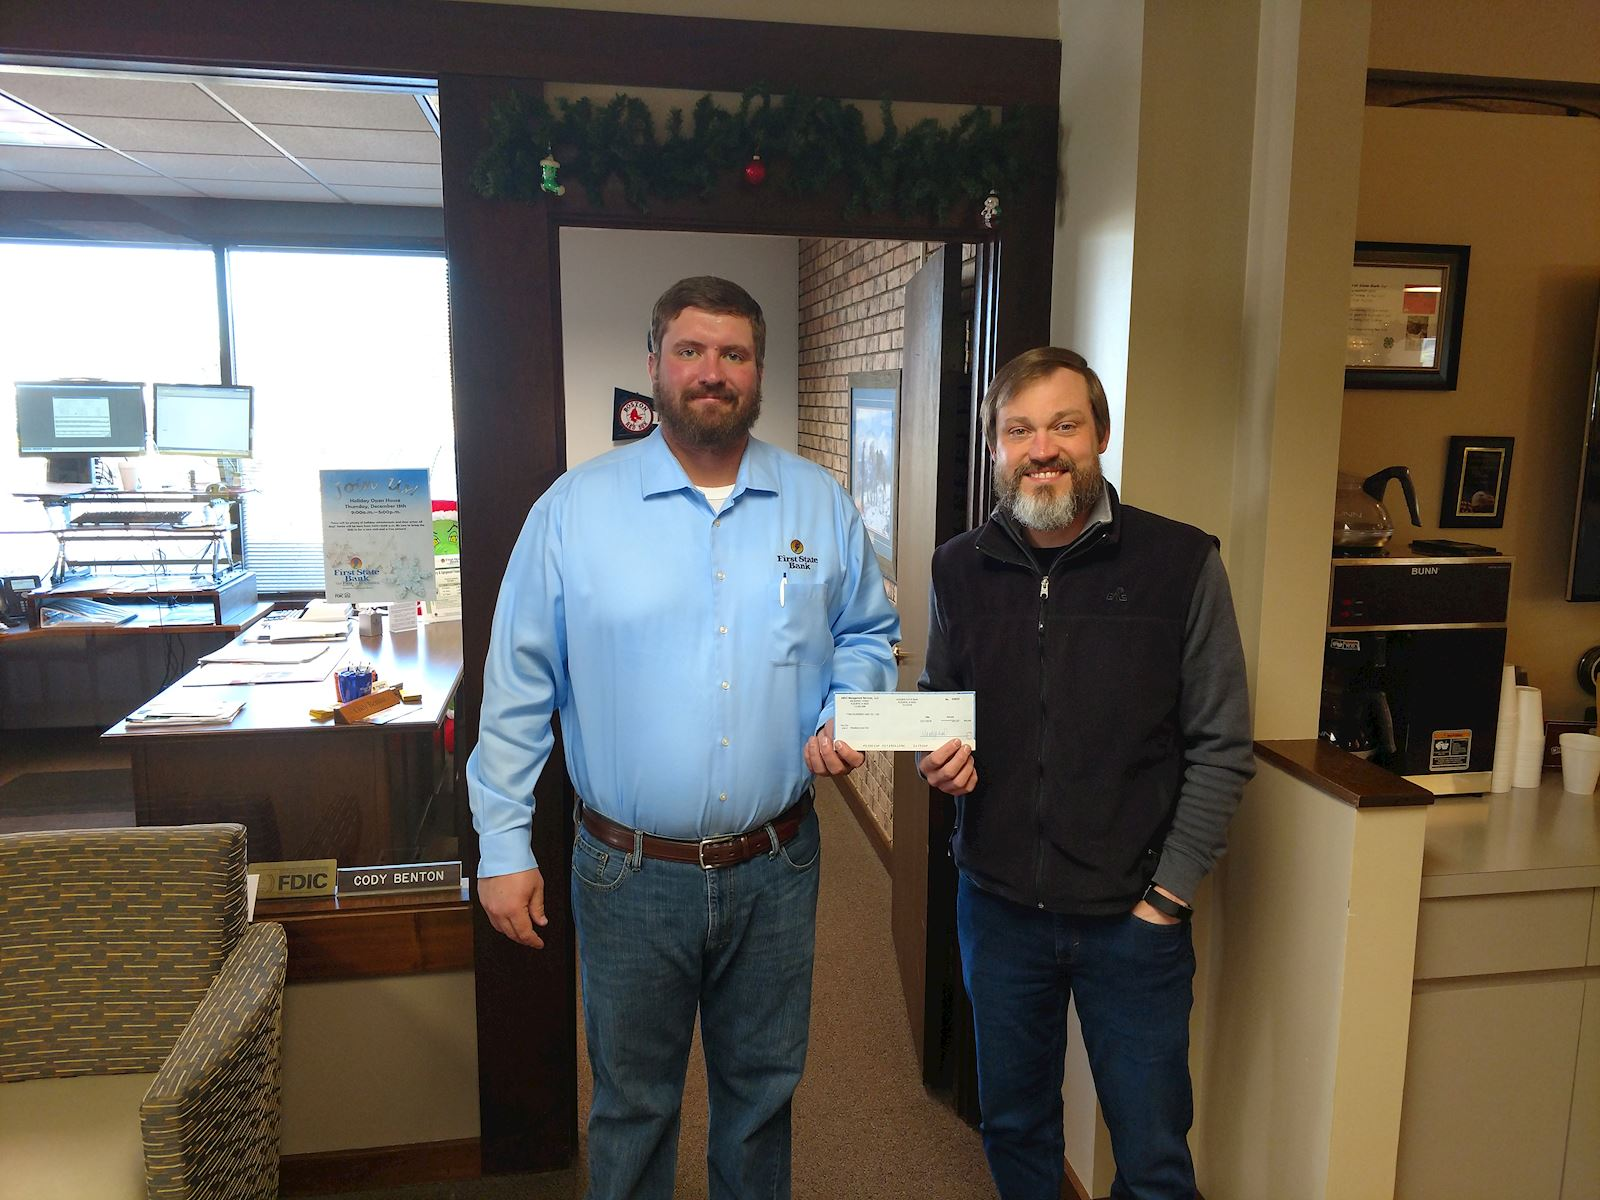 Wheatland Lions Club receives donation in honor of the partners of AMVC